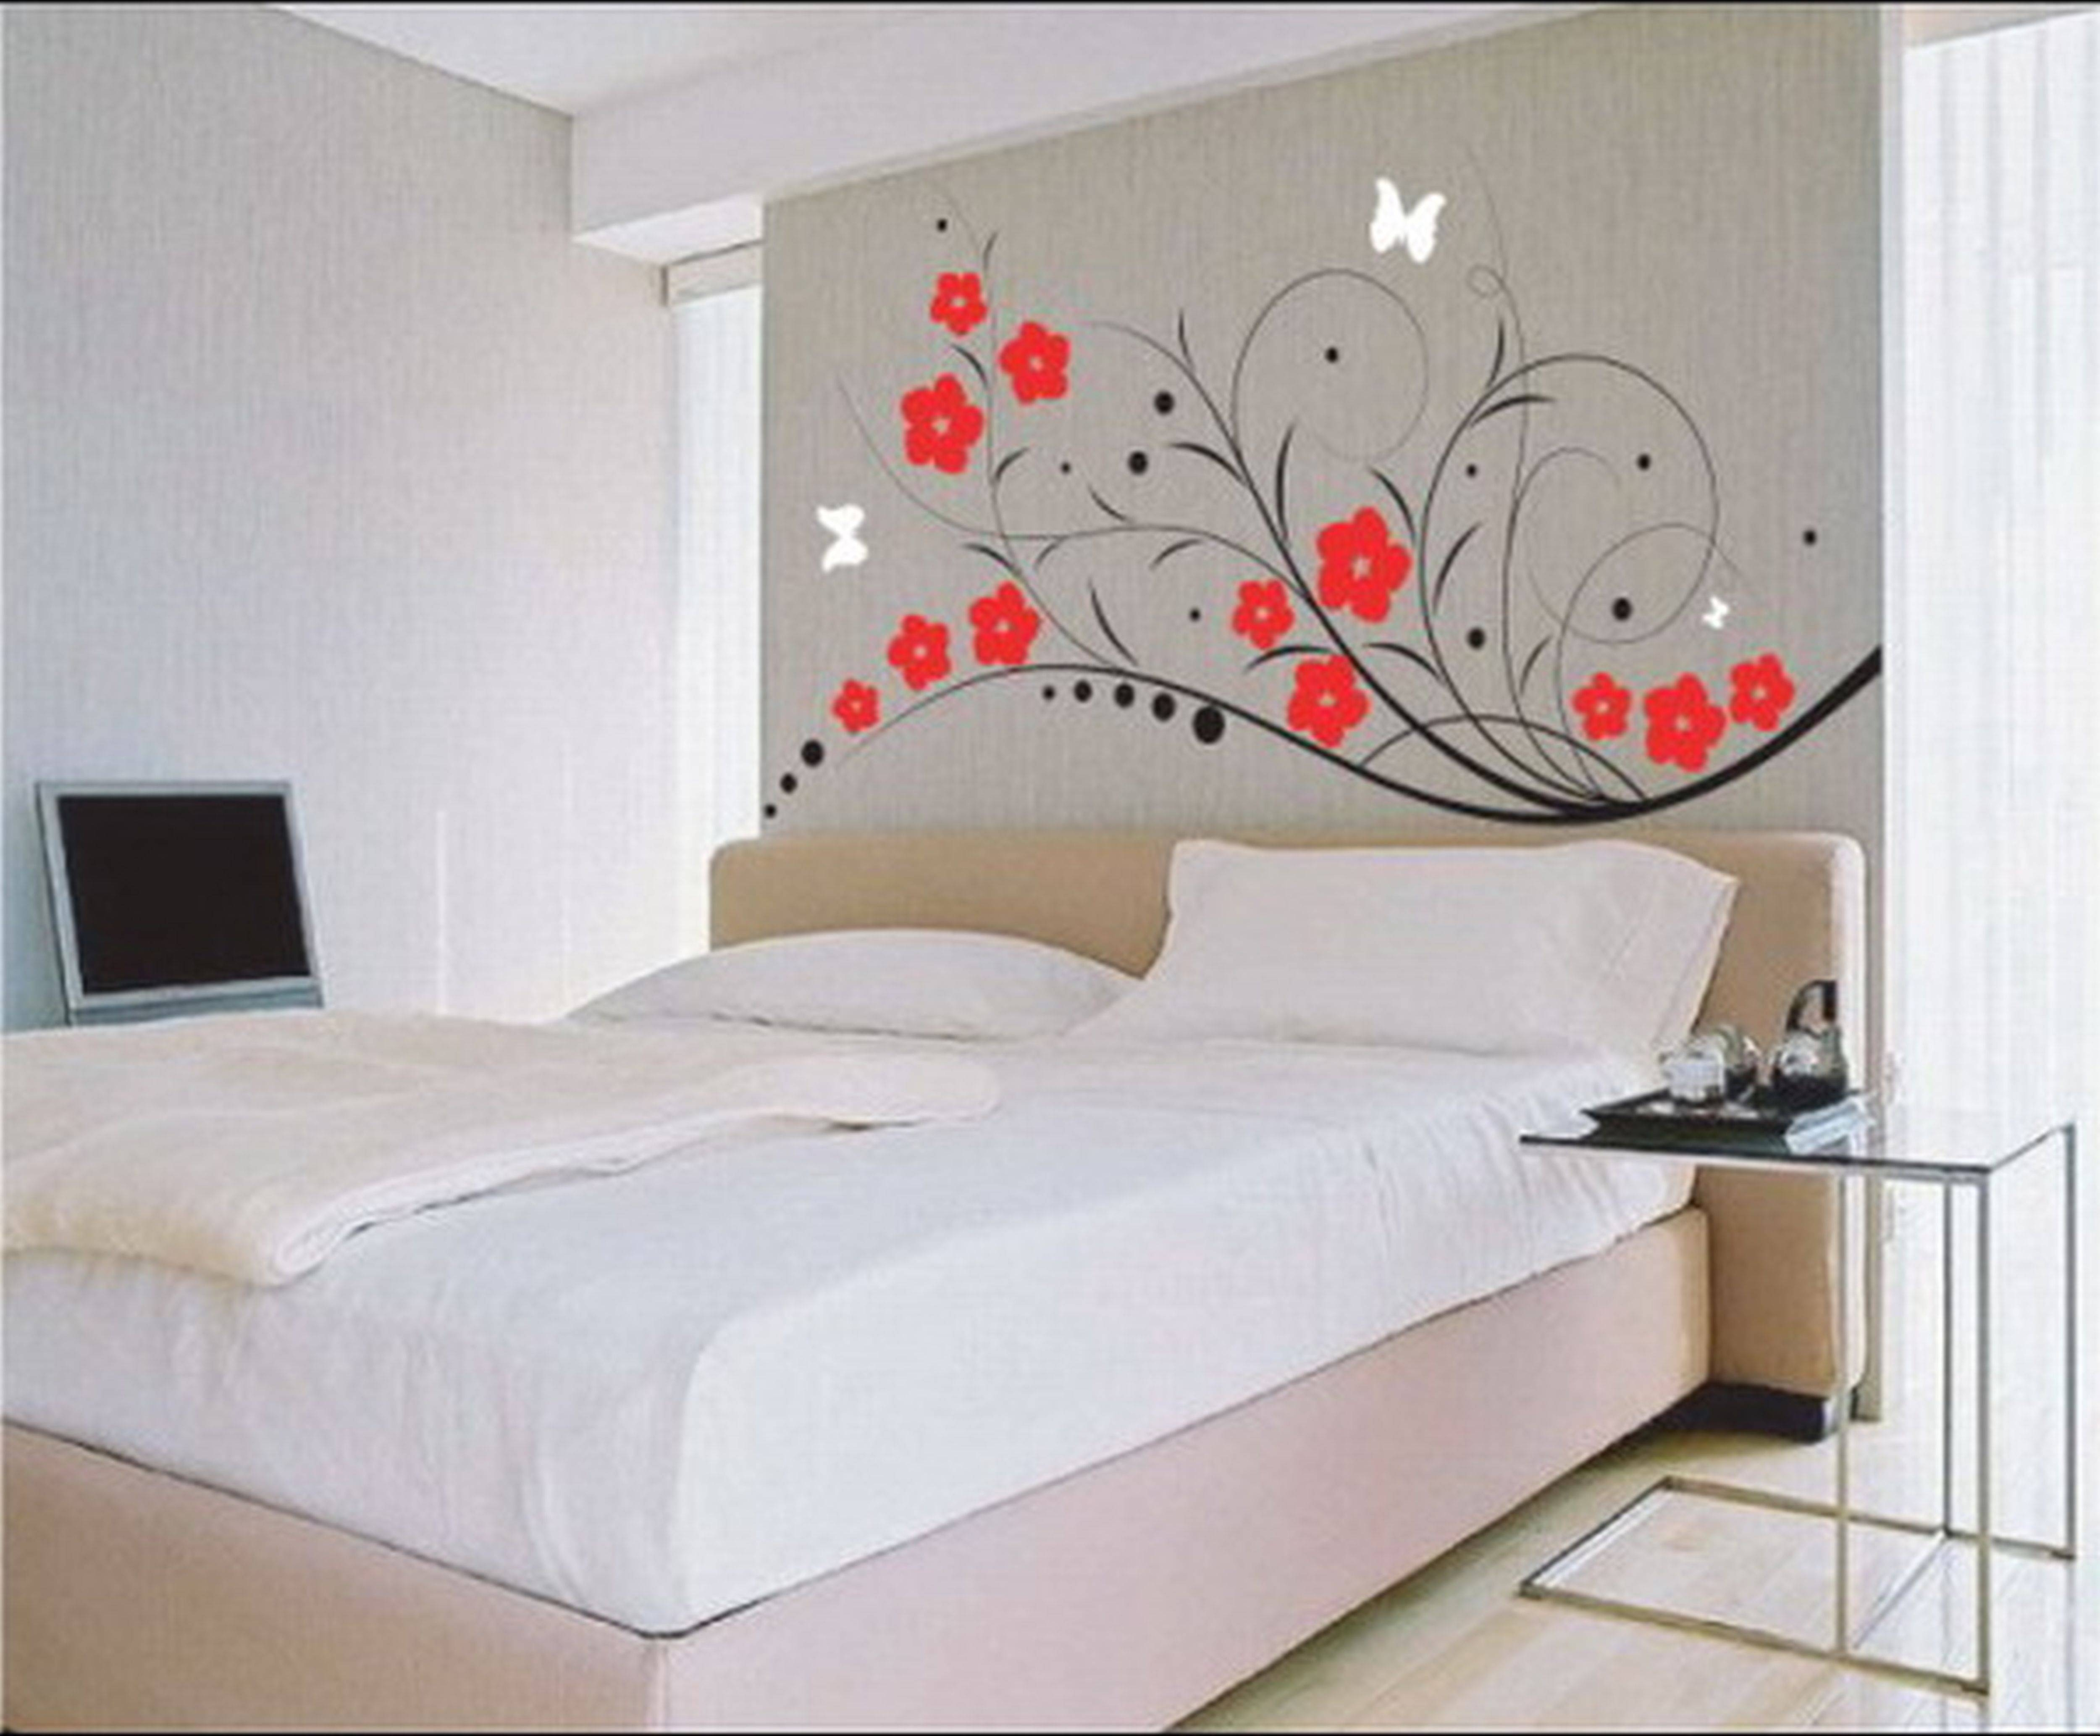 Bedroom : Cool Wall Decor Large Wall Art Cheap Bedroom Paint Room Throughout Current Large White Wall Art (View 5 of 20)